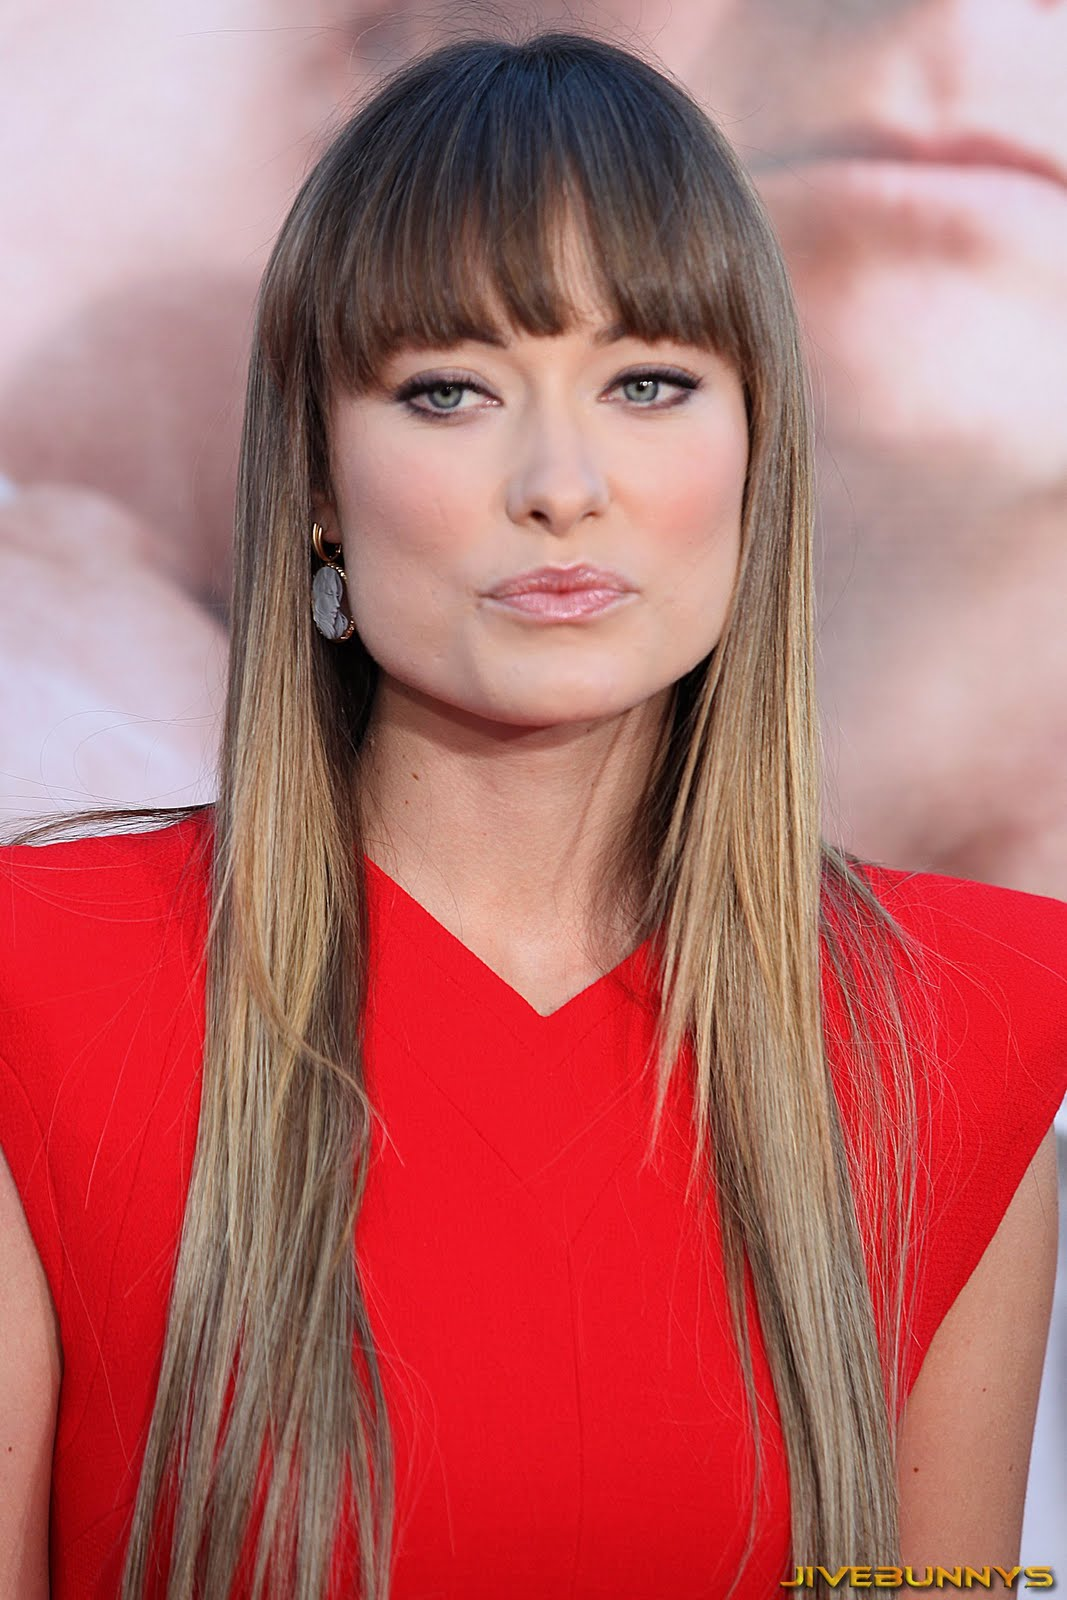 Olivia Wilde Profile And New Pictures 2013: Olivia Wilde Special Pictures (5)